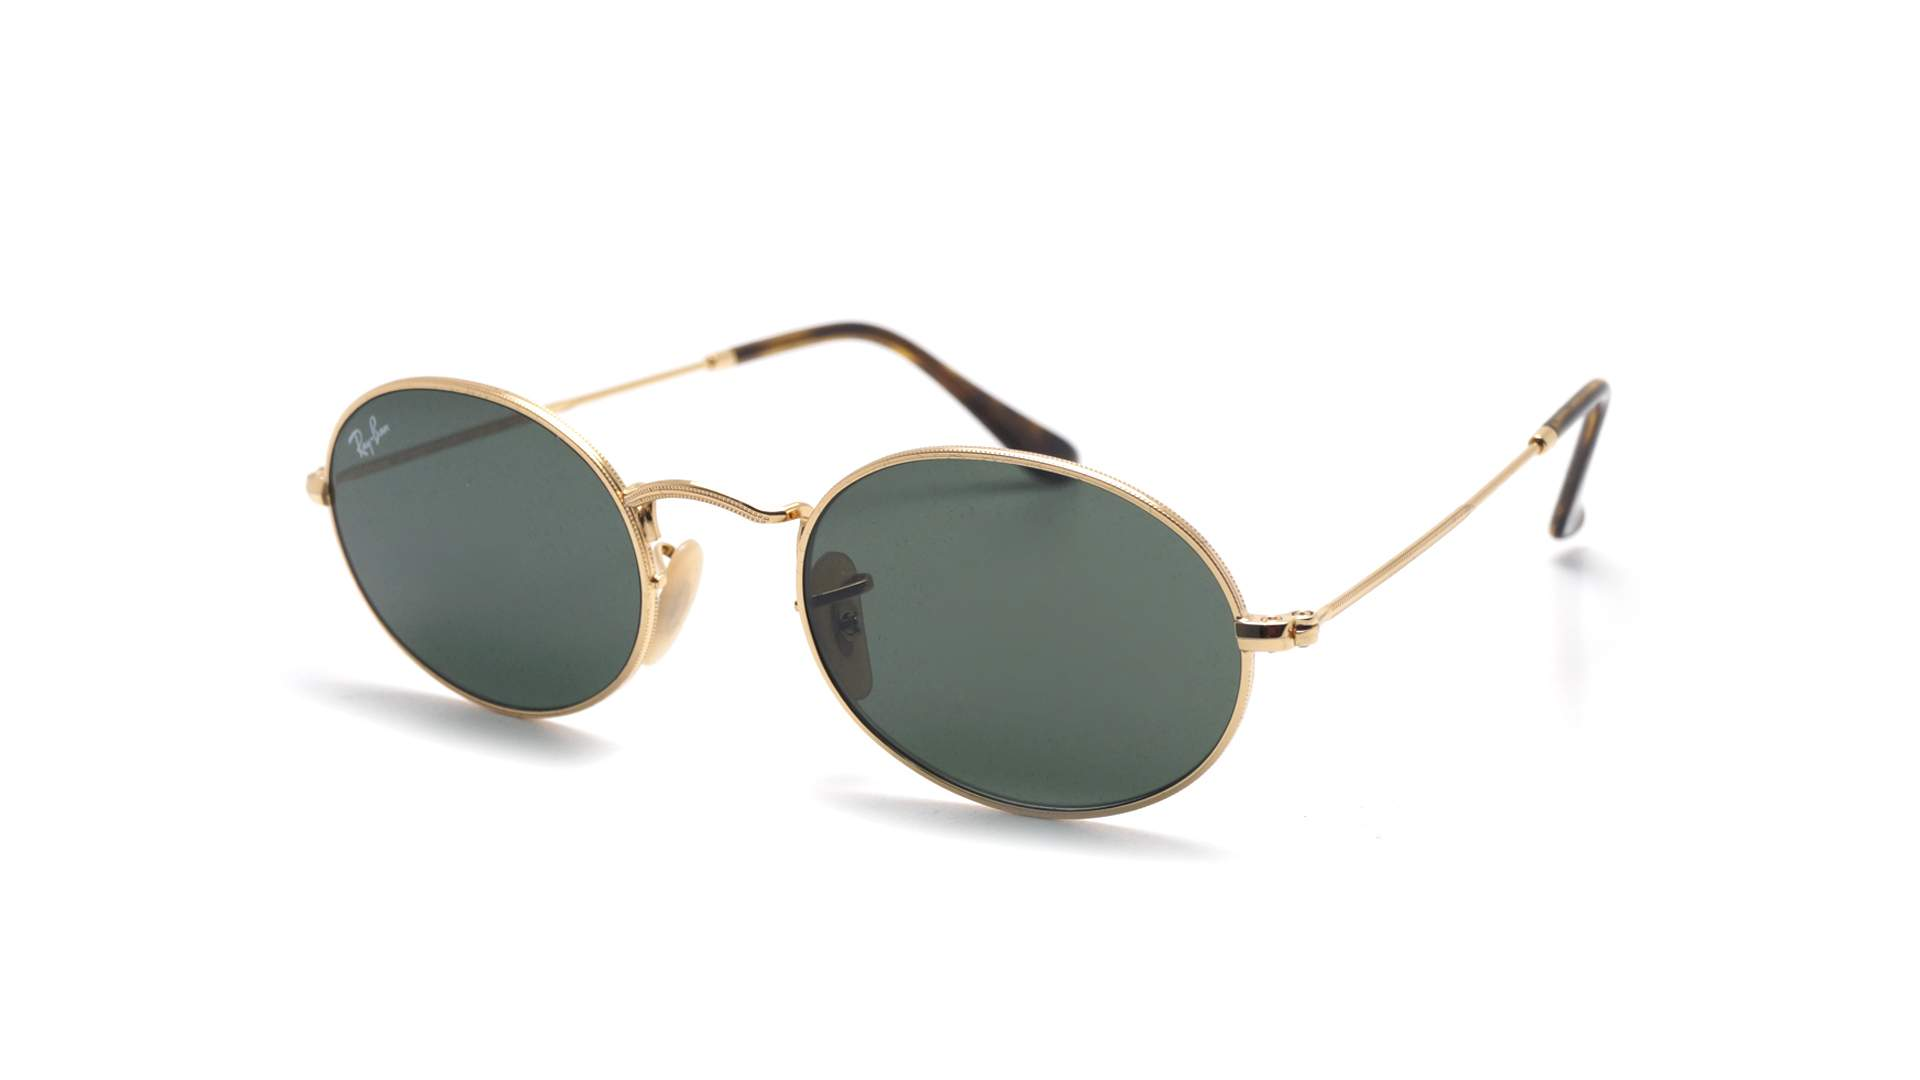 94ac508e41 Sunglasses Ray-Ban Oval Flat Lenses Gold G-15 RB3547N 001 51-21 Medium